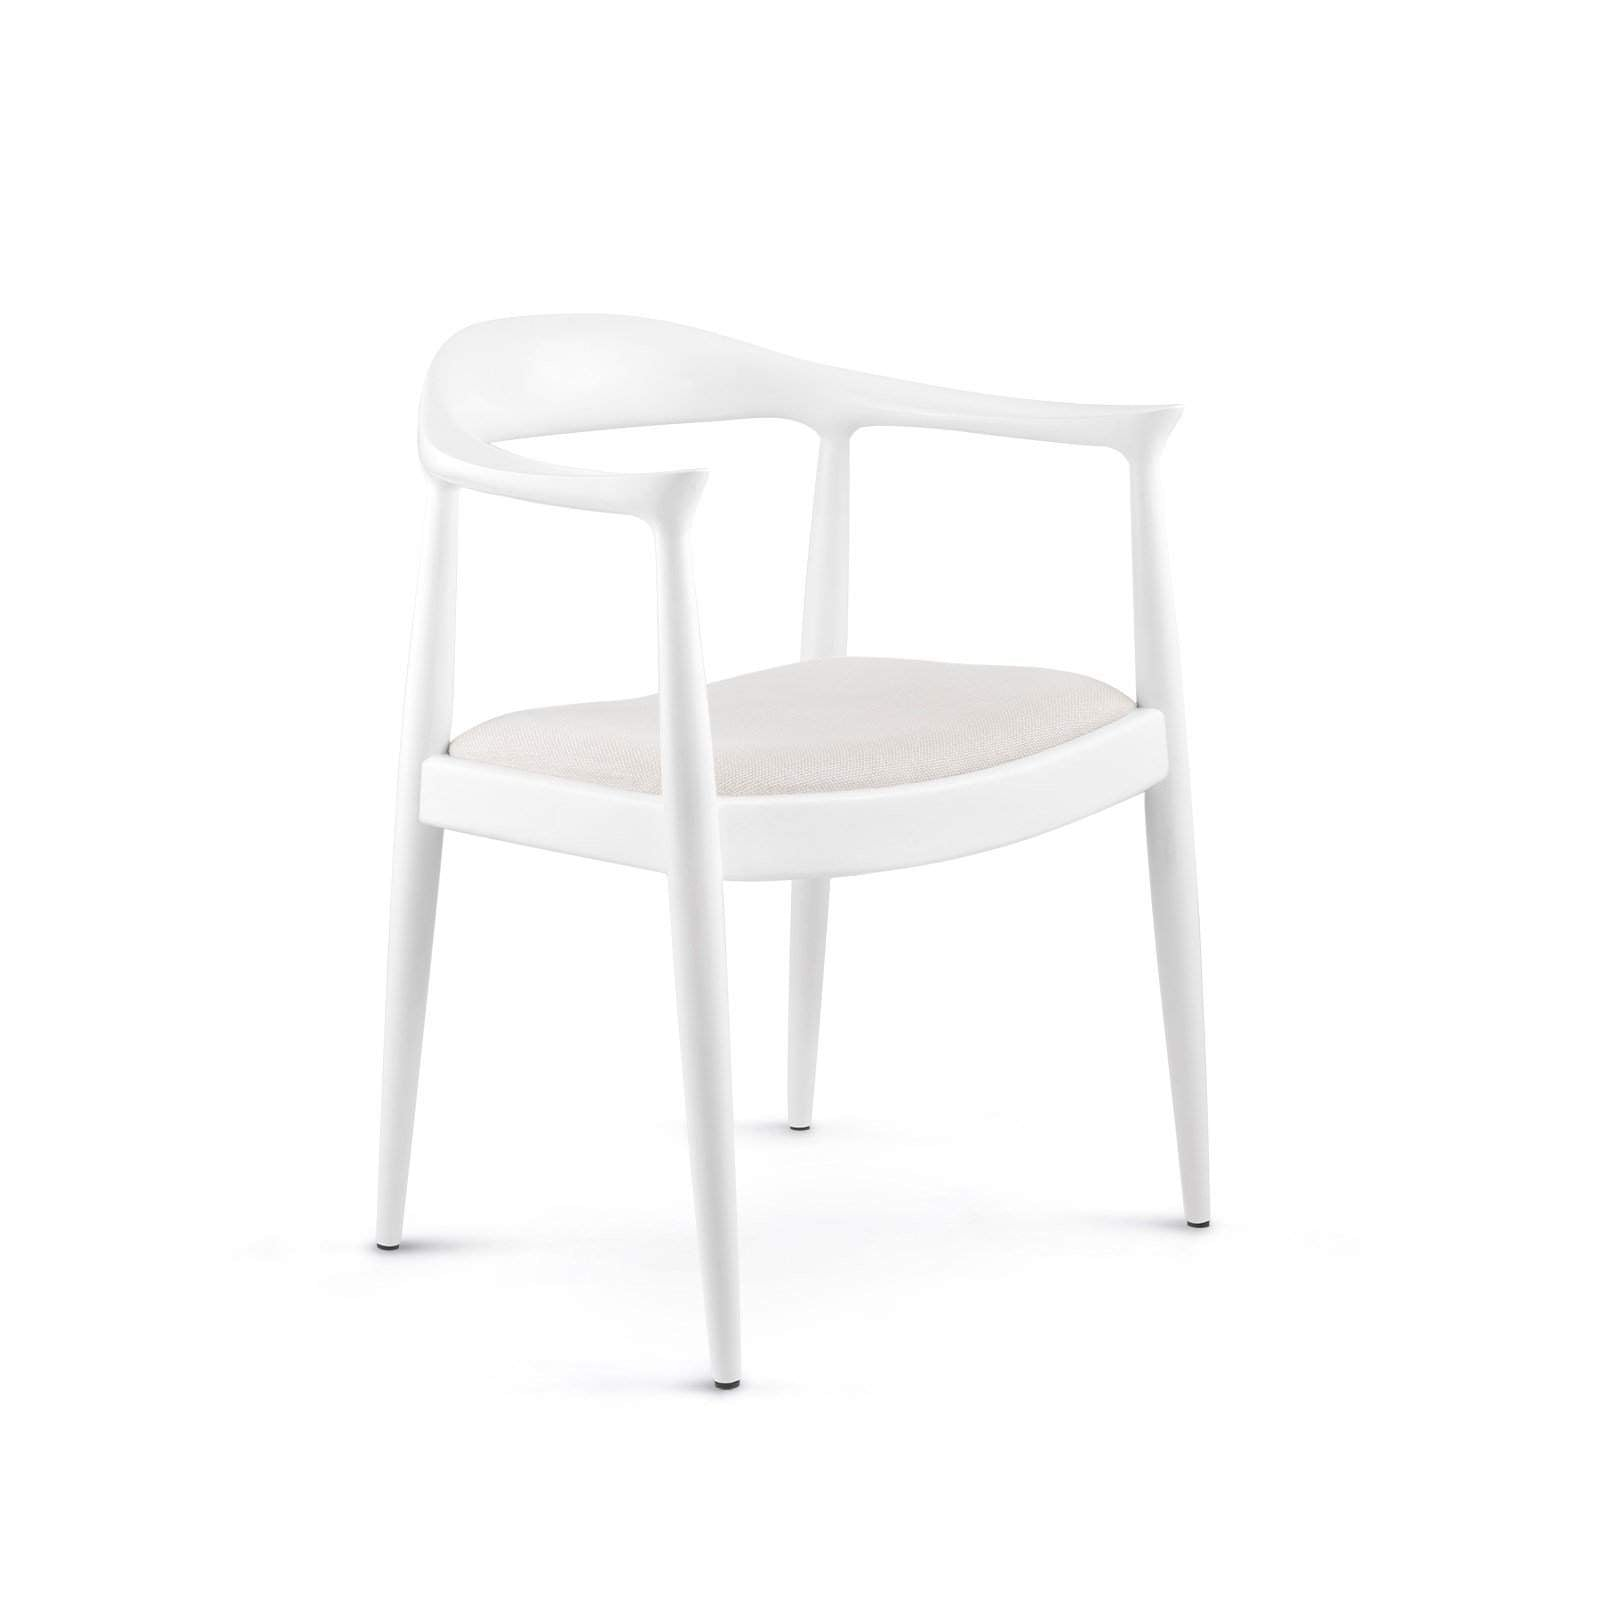 Bungalow 5 - DANISH ARMCHAIR in WHITE